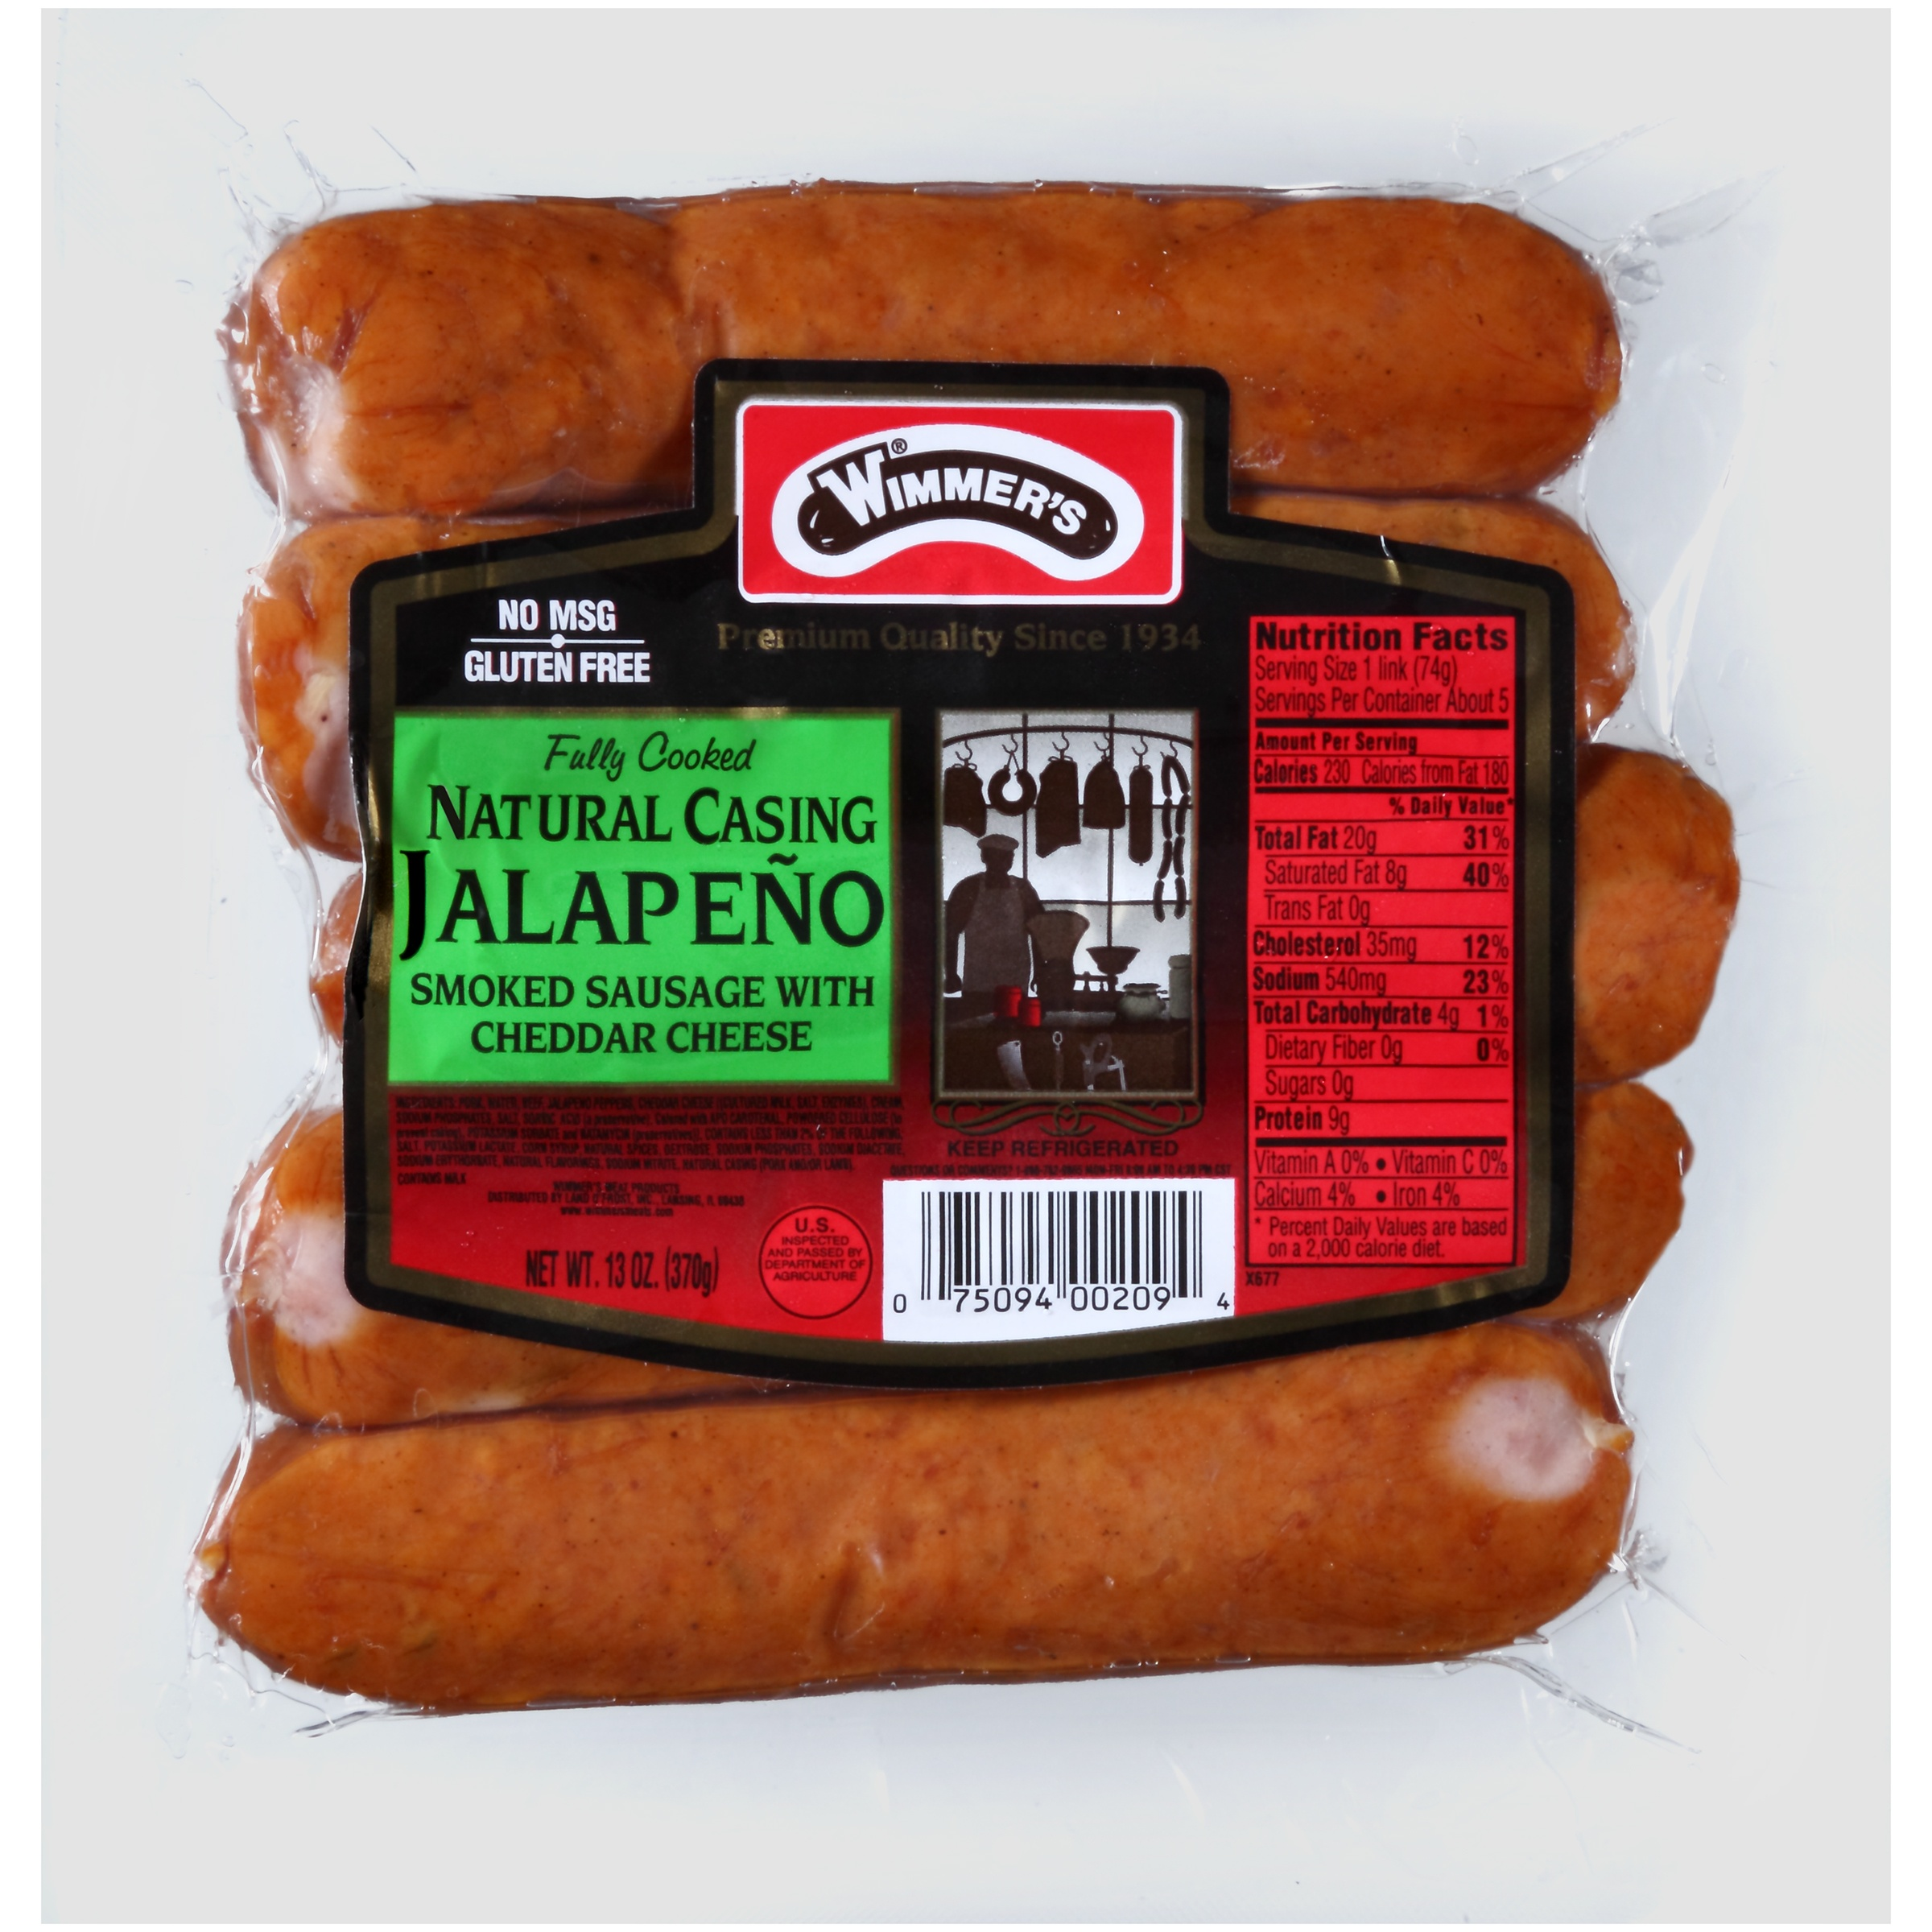 Wimmer's® Natural Casing Jalapeño Smoked Sausage with Cheddar Cheese 5 ct Pack